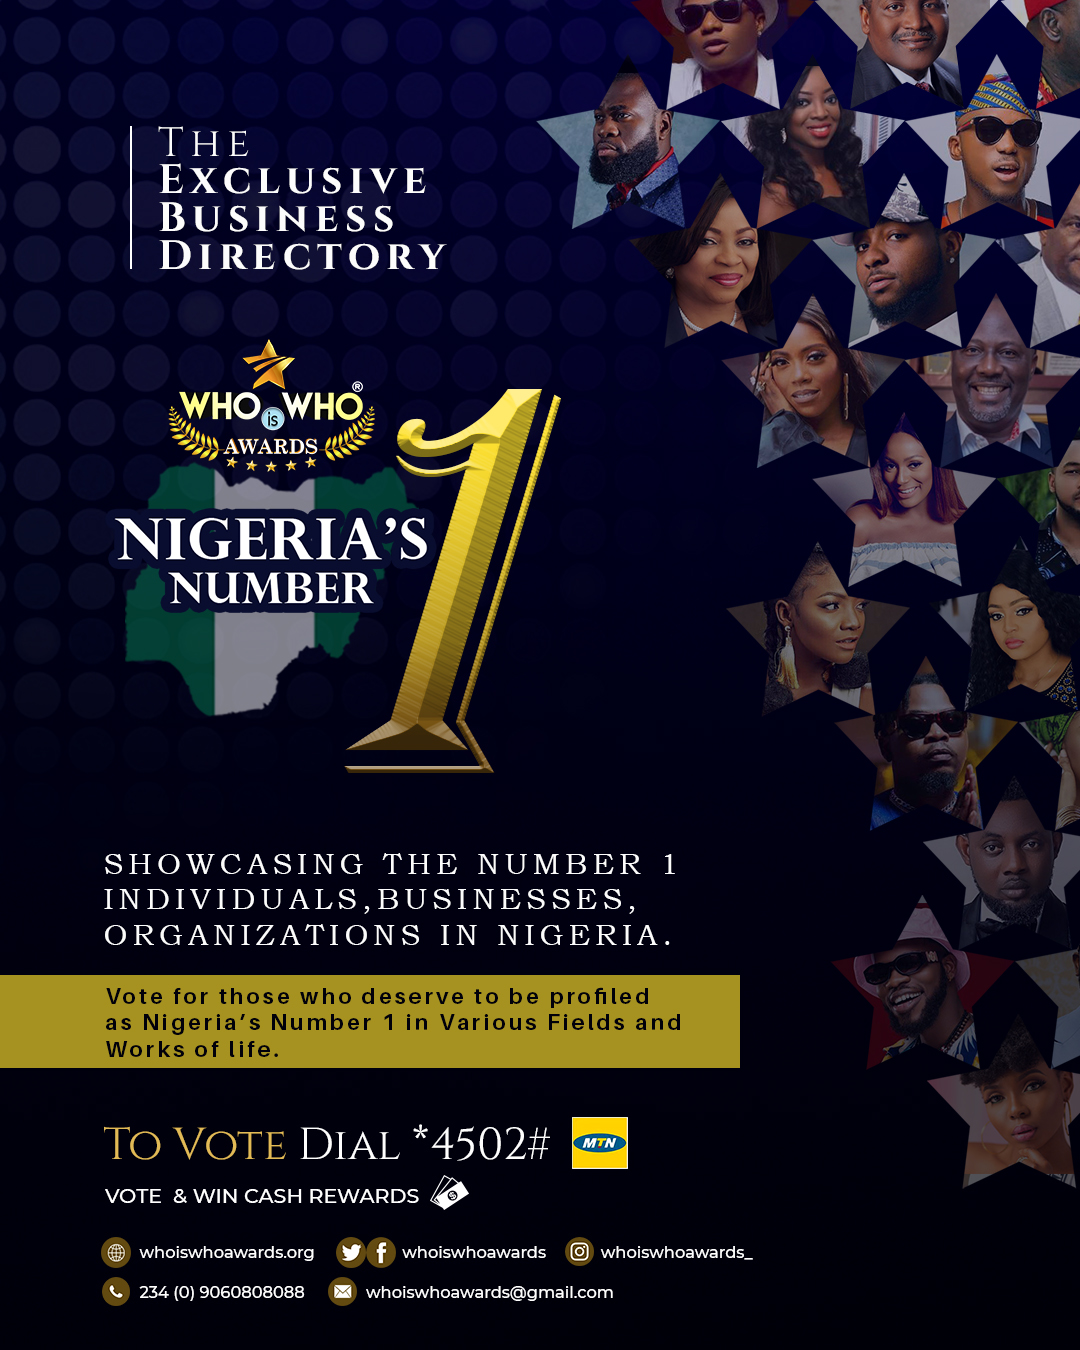 Who Is Who Awards Launch Nigeria's Number 1 - The Exclusive Business Directory Edition